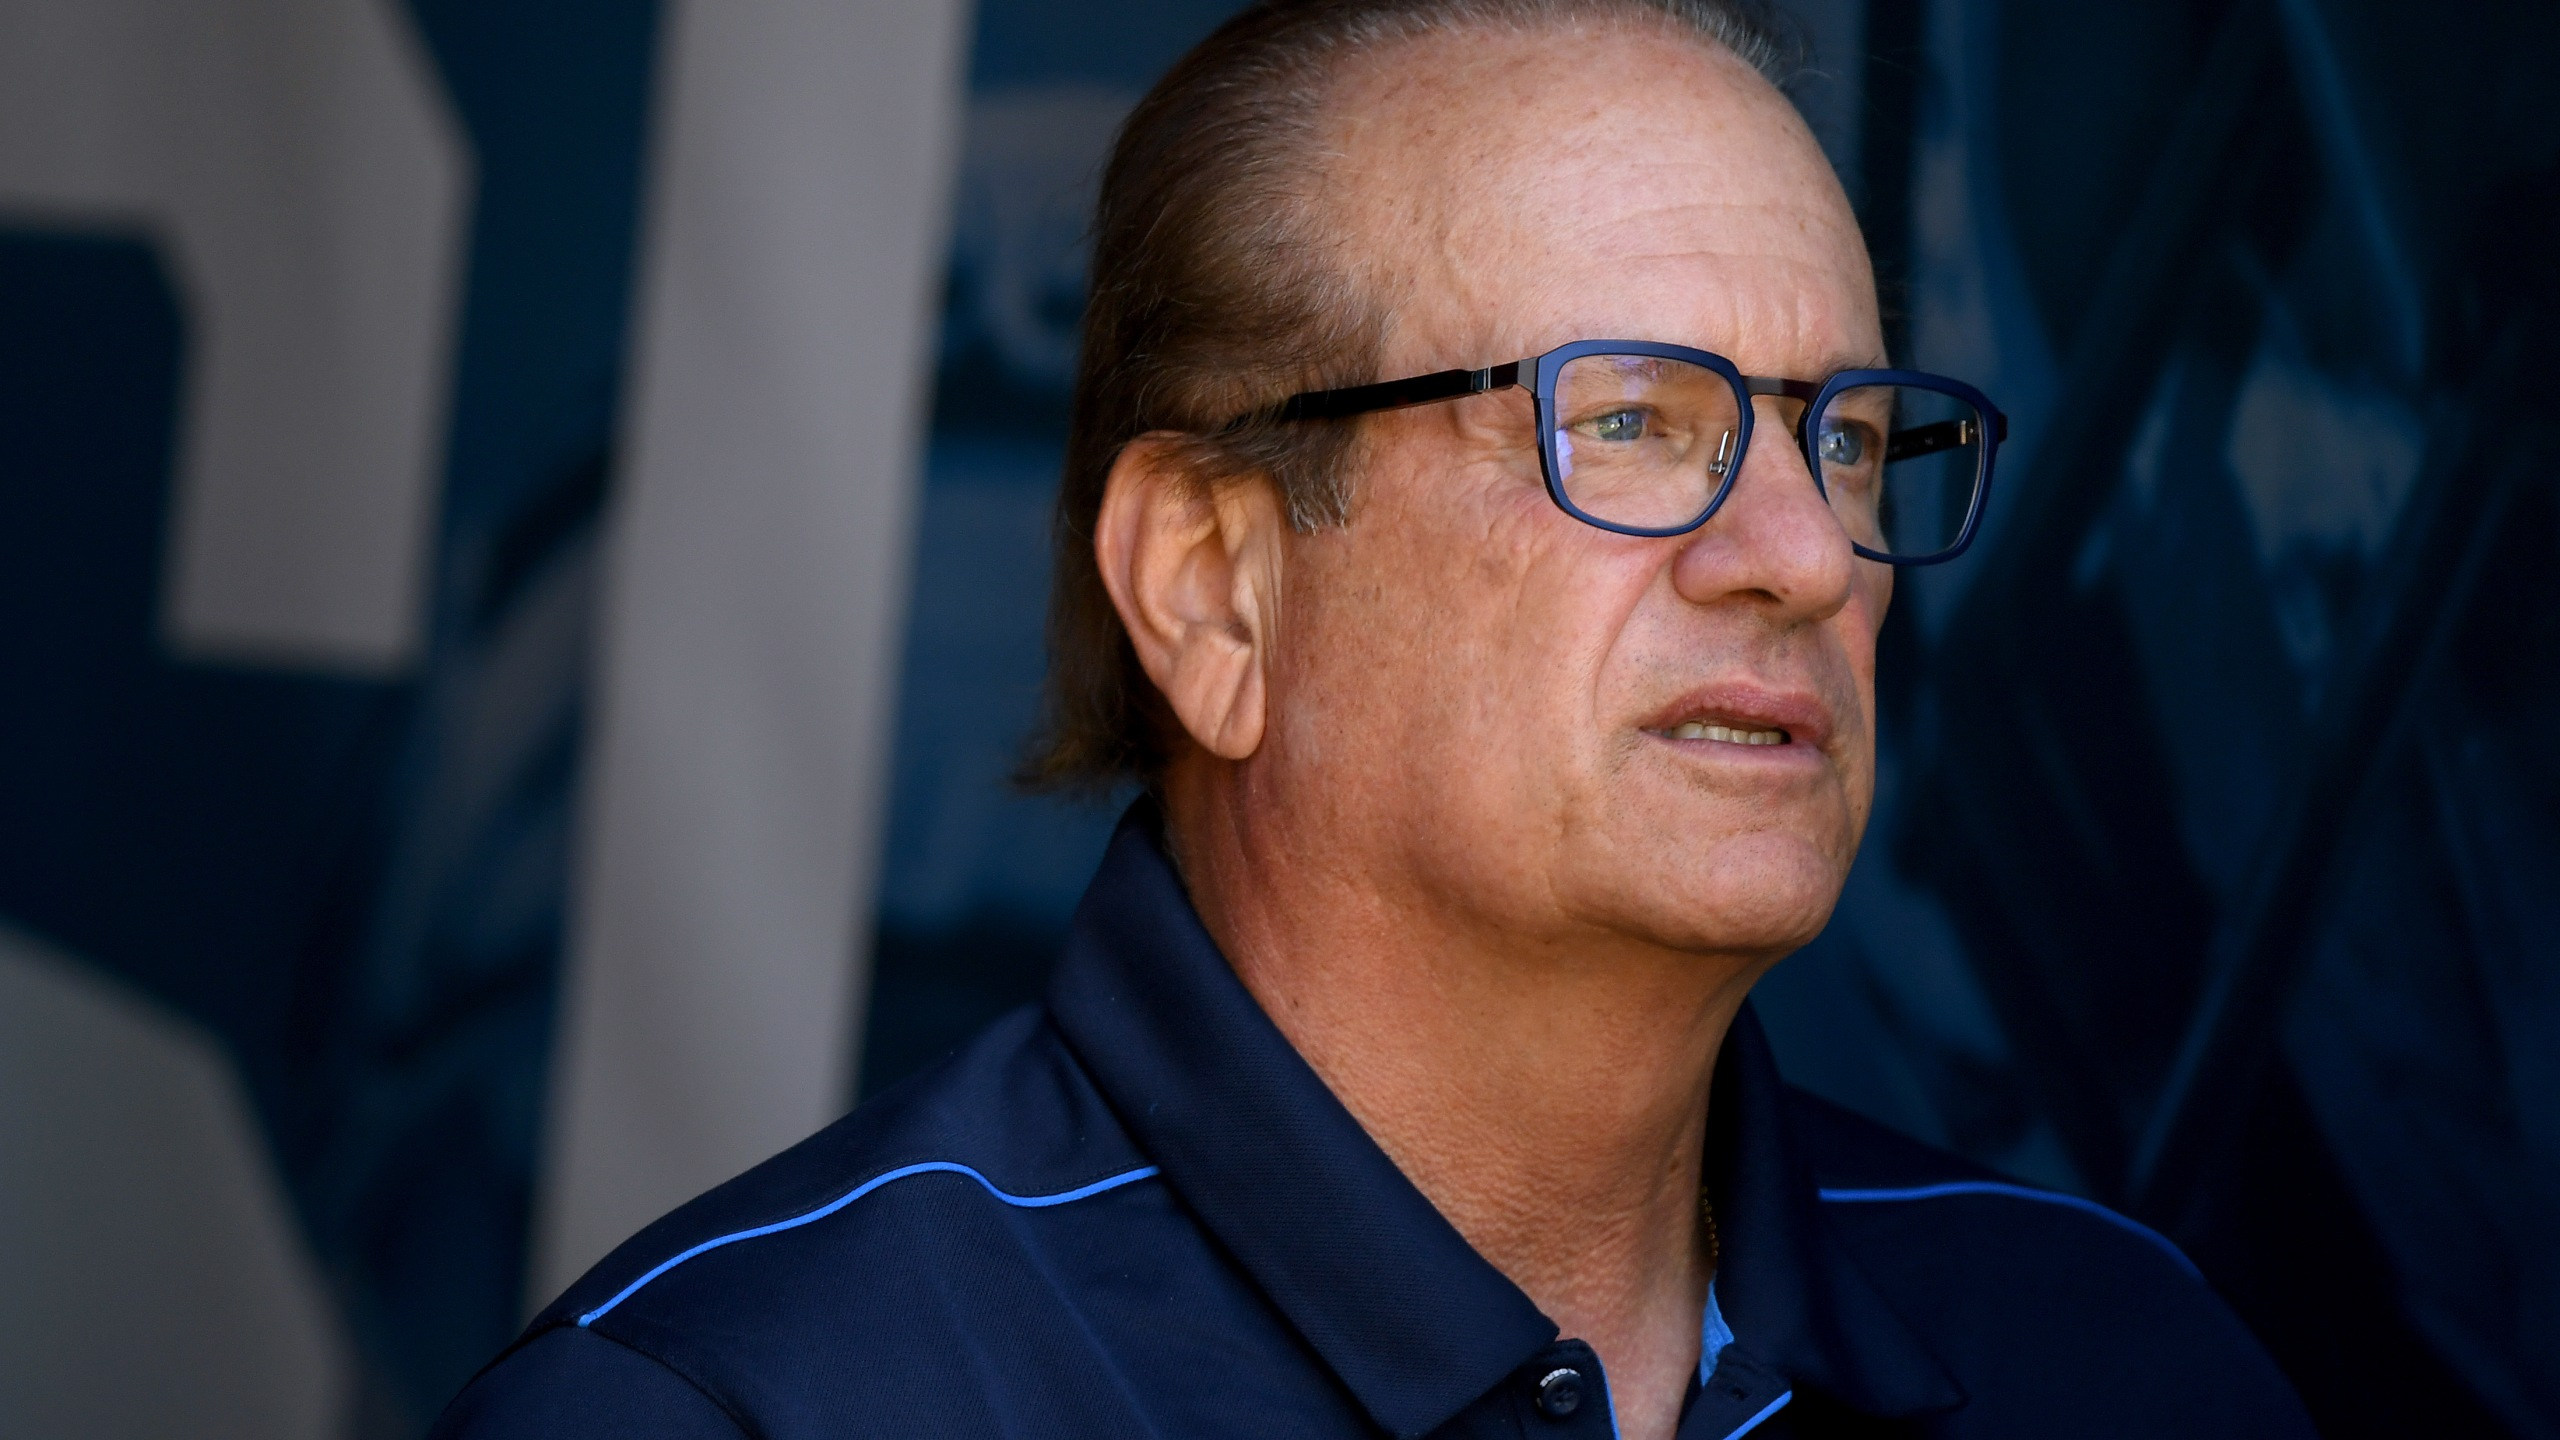 Los Angeles Chargers owner Dean Spanos before the game against the Denver Broncos at Dignity Health Sports Park on Oct. 6, 2019, in Carson, Calif. (Credit: Harry How/Getty Images)